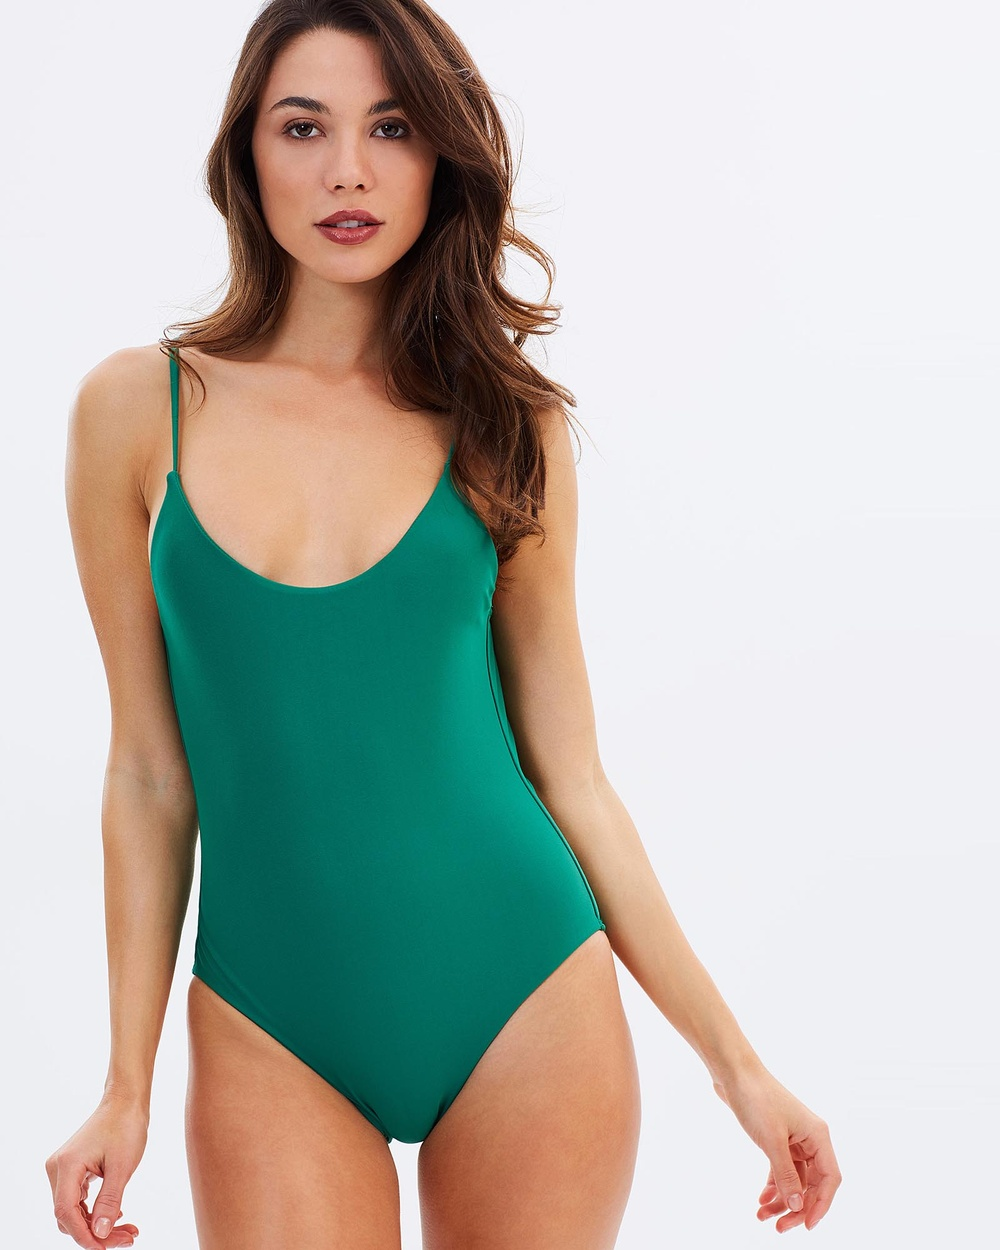 Tanliines The Lisa One Piece One-Piece / Swimsuit Green The Lisa One-Piece